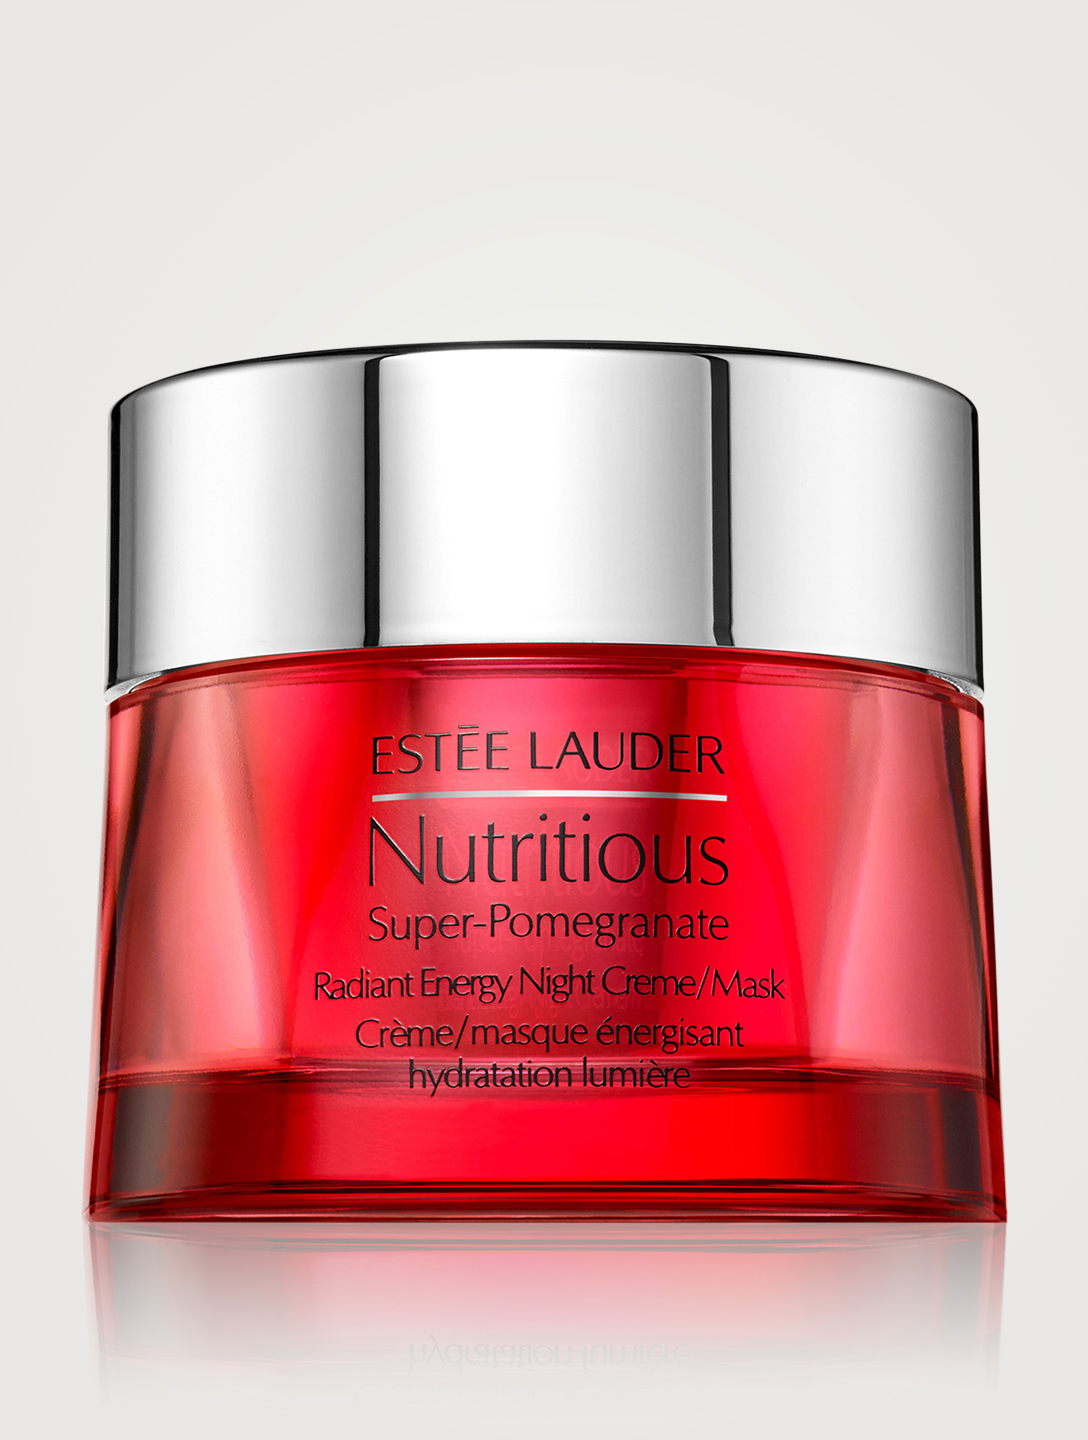 ESTÉE LAUDER Nutritious Super-Pomegranate Radiant Energy Night Cream/Mask Beauty